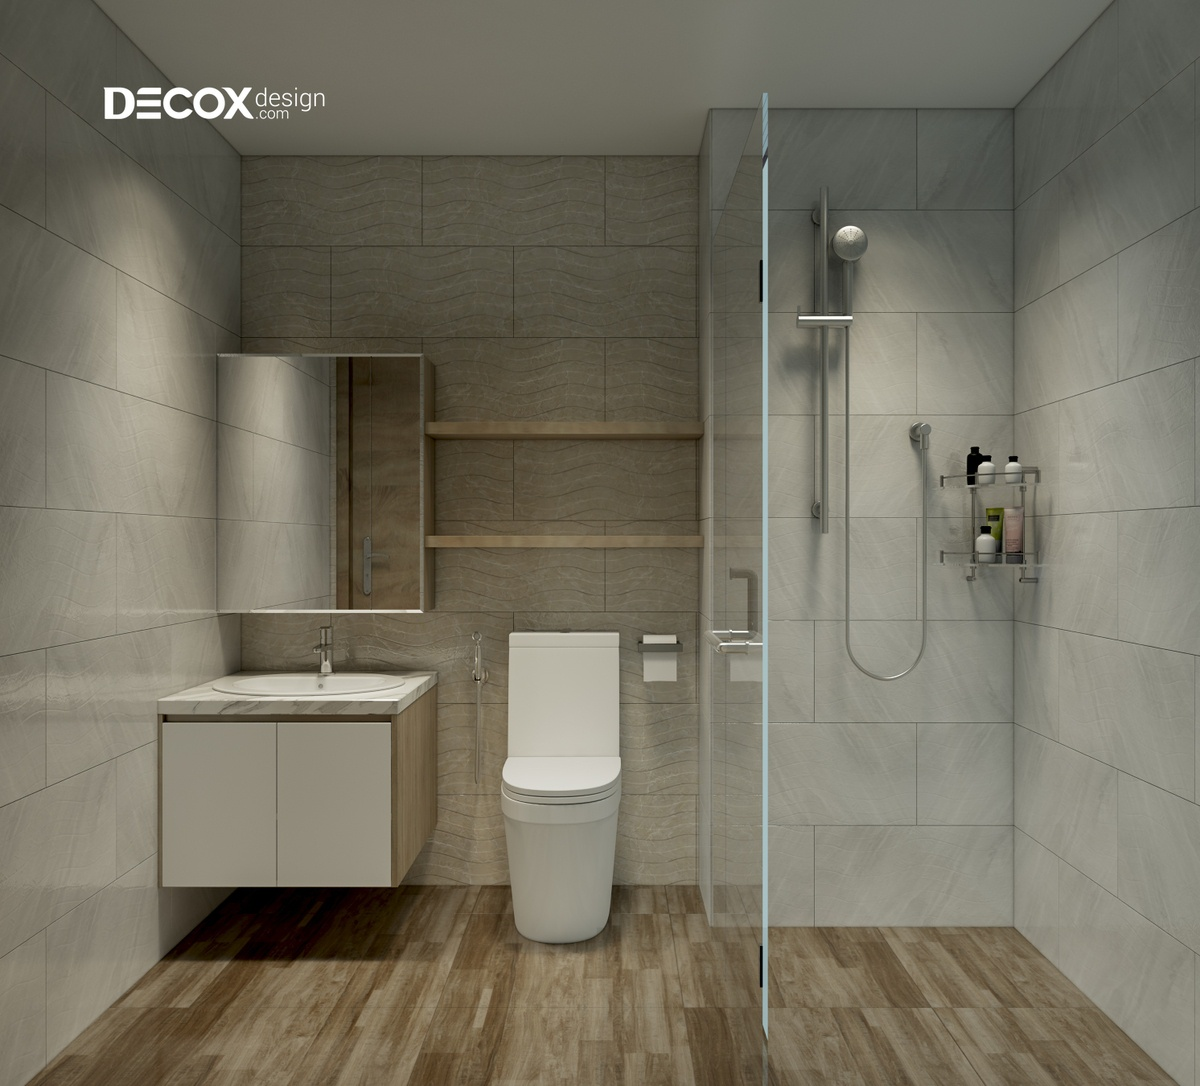 thiet-ke-noi-that-sunrise-cityview-76m2-de180108-wc-01-17-decox-design